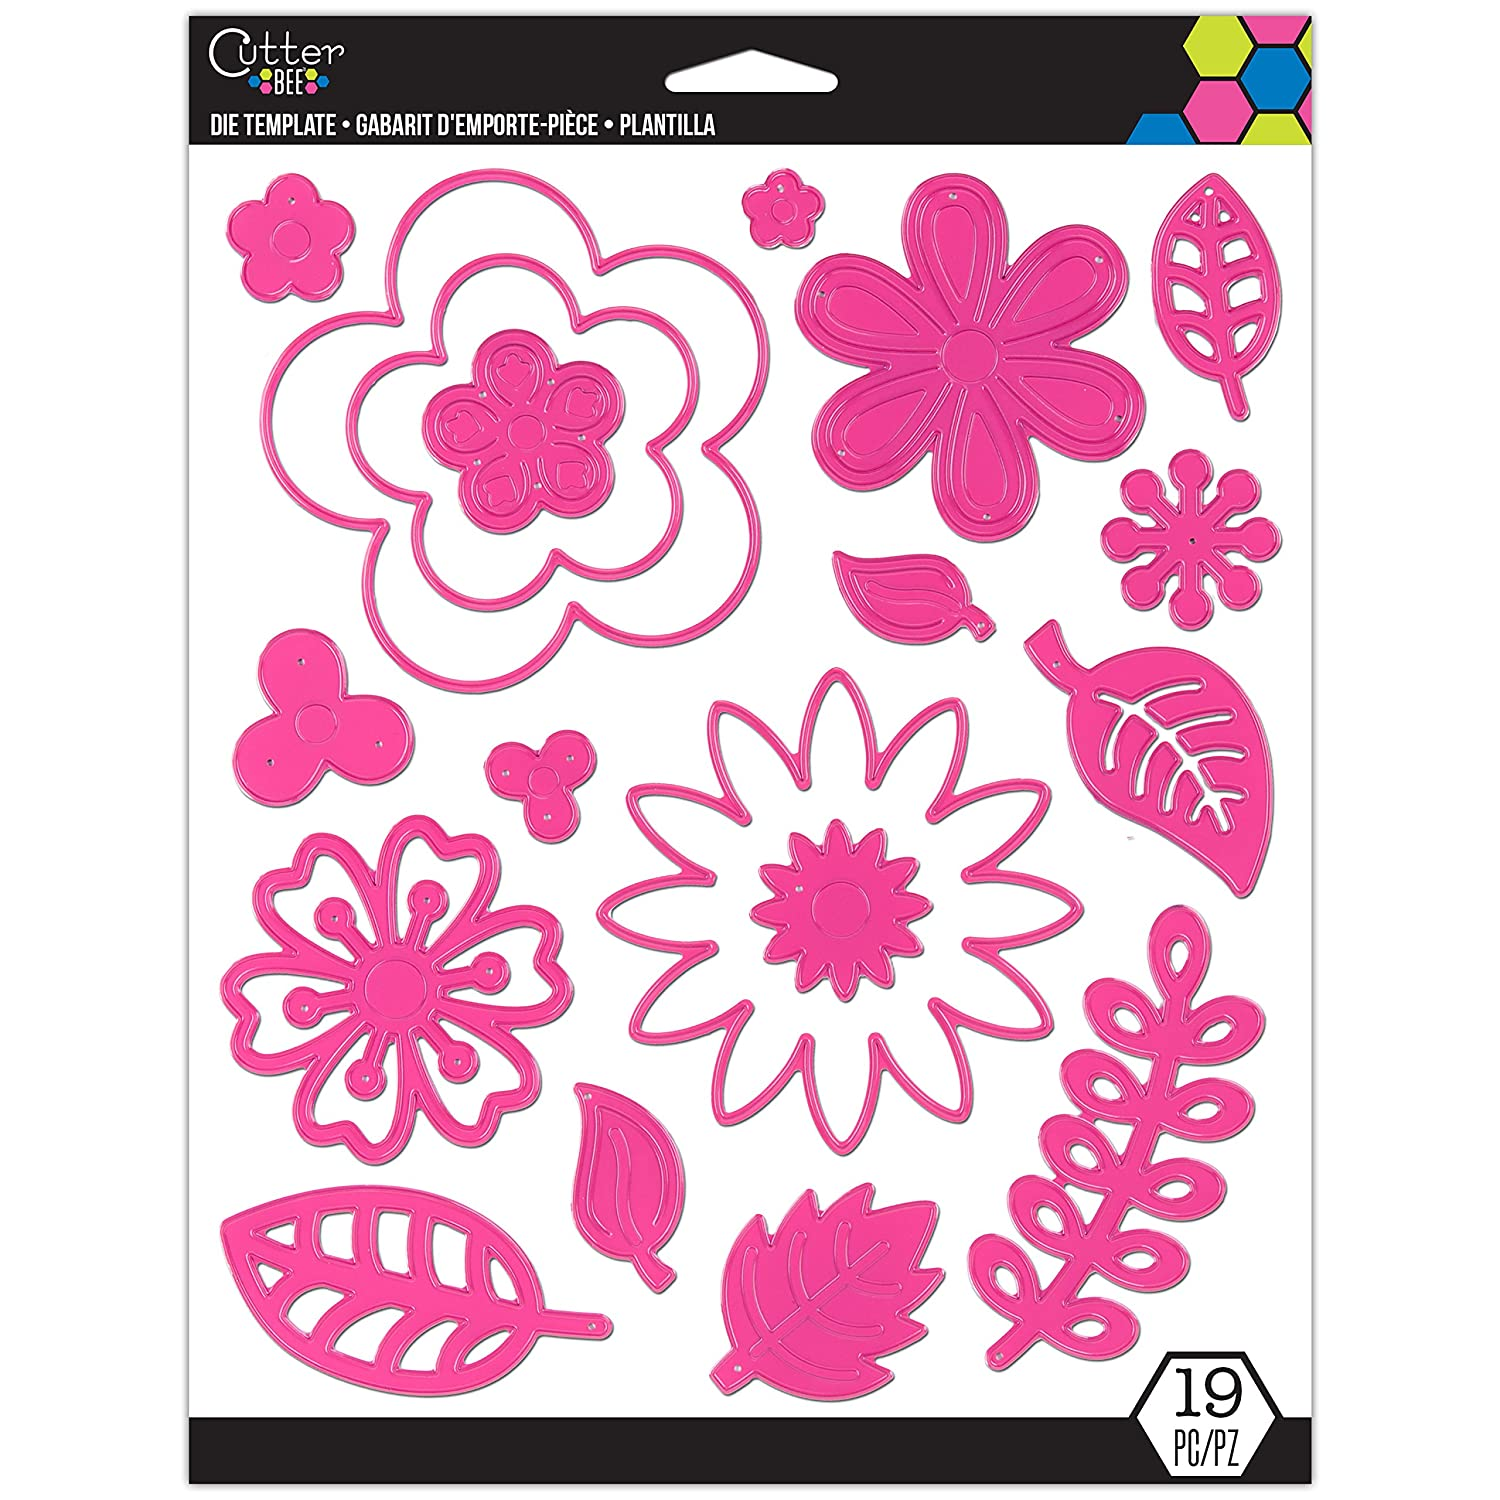 Cutter Bee Die Template - Flowers: Amazon.in: Home & Kitchen